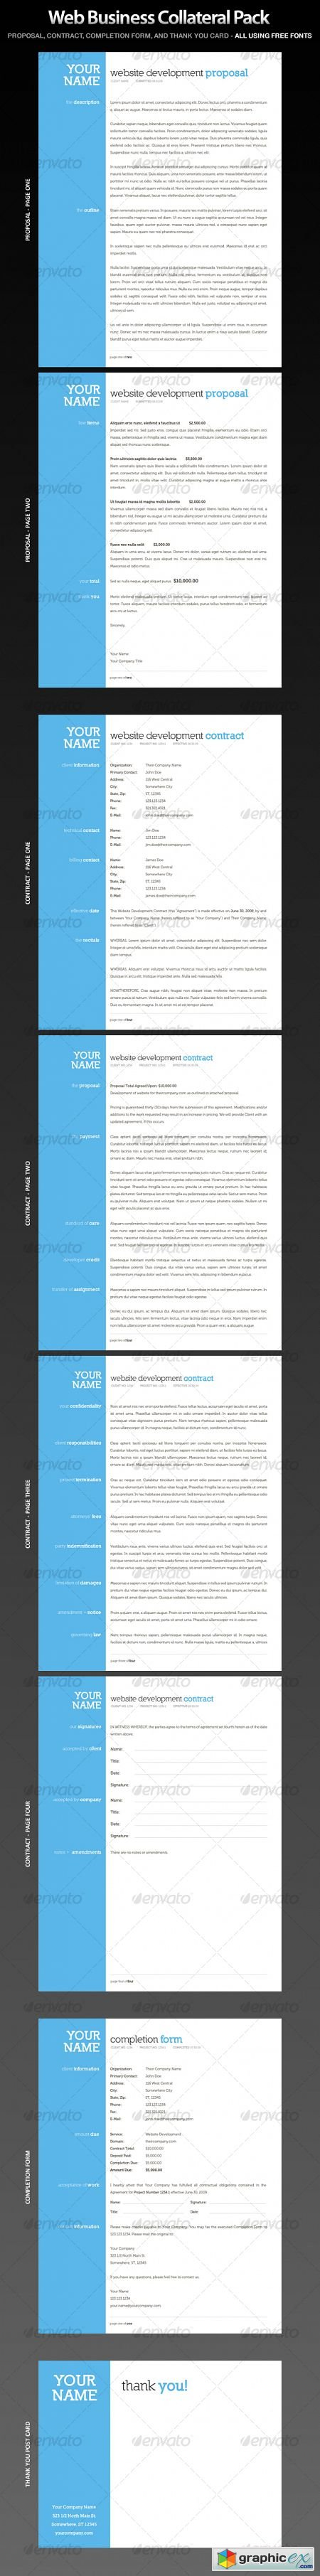 Web Business Collateral - Contract, Proposal